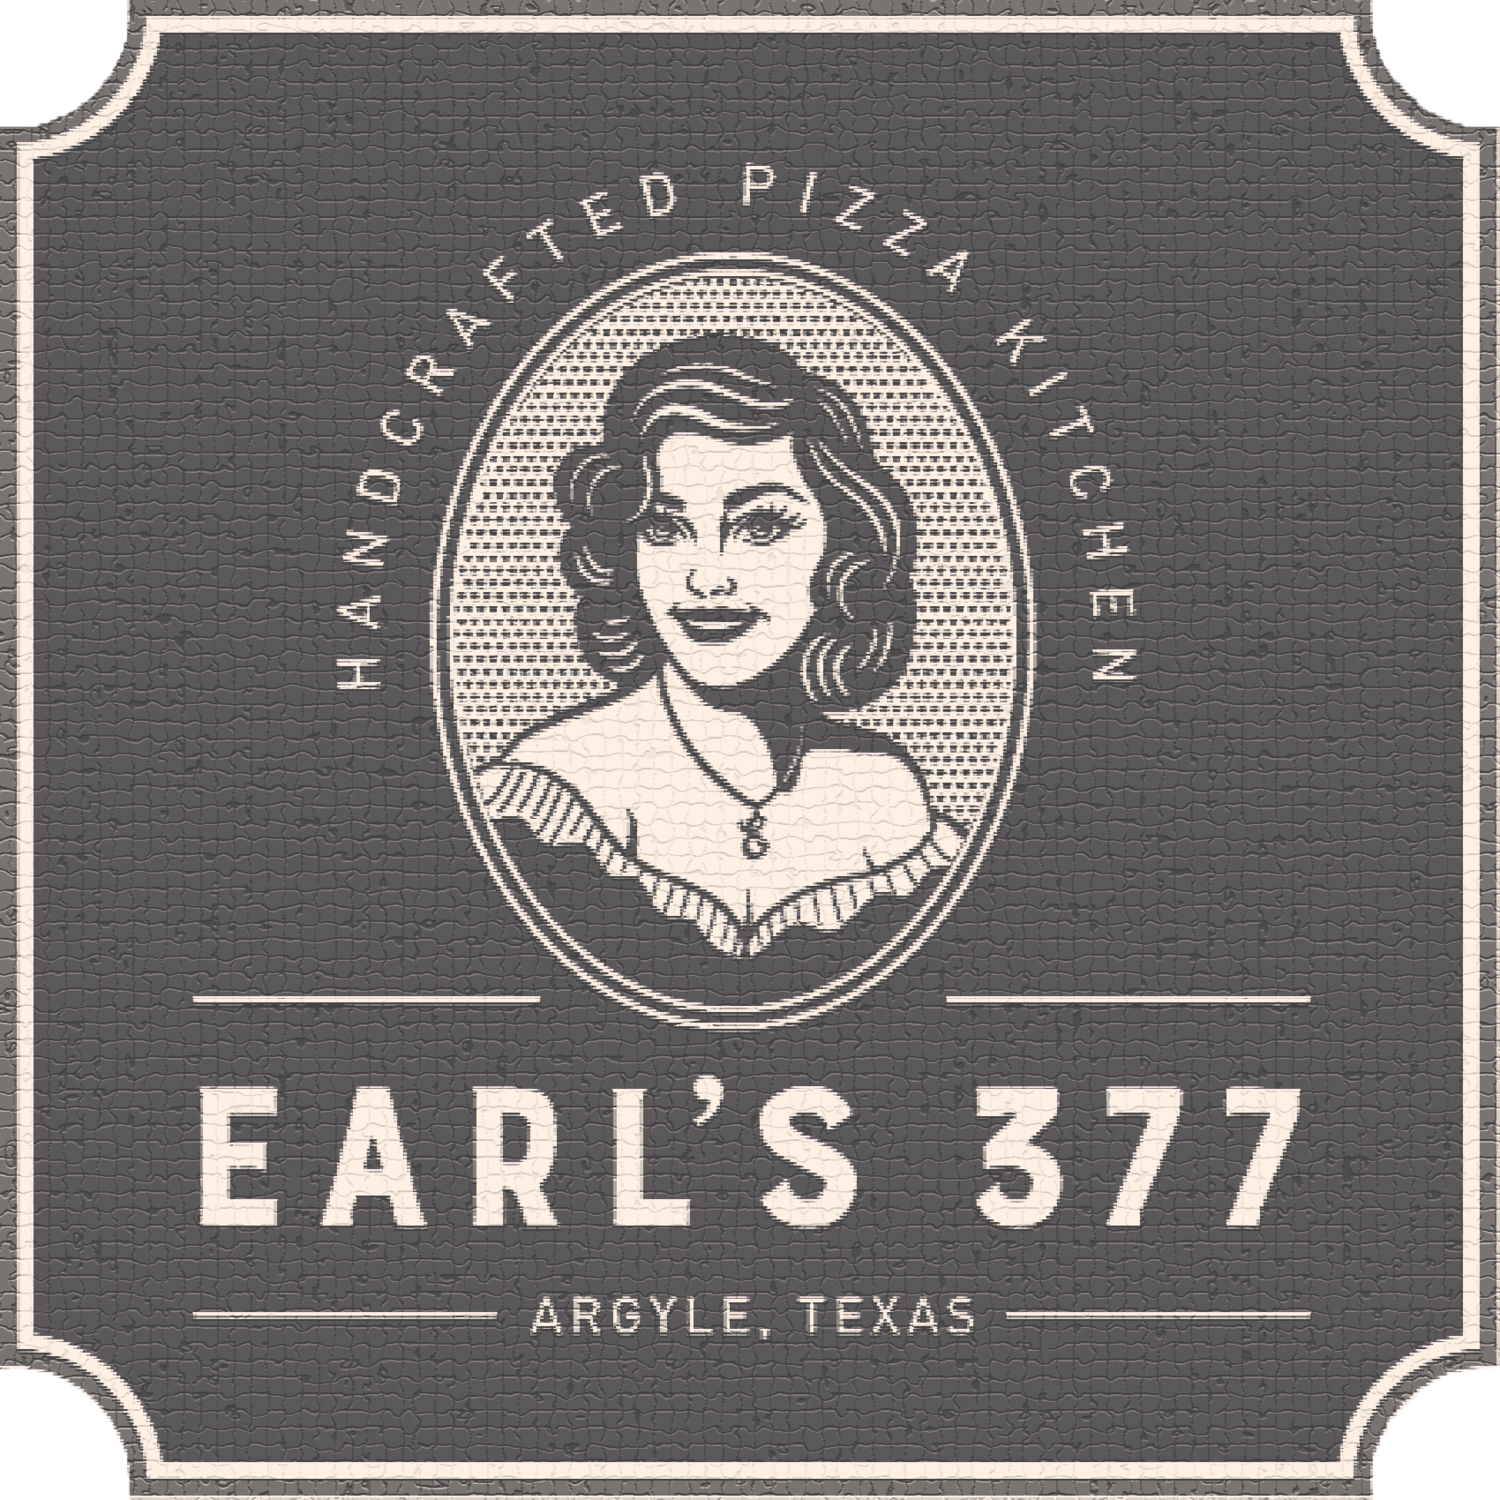 Earls377.png